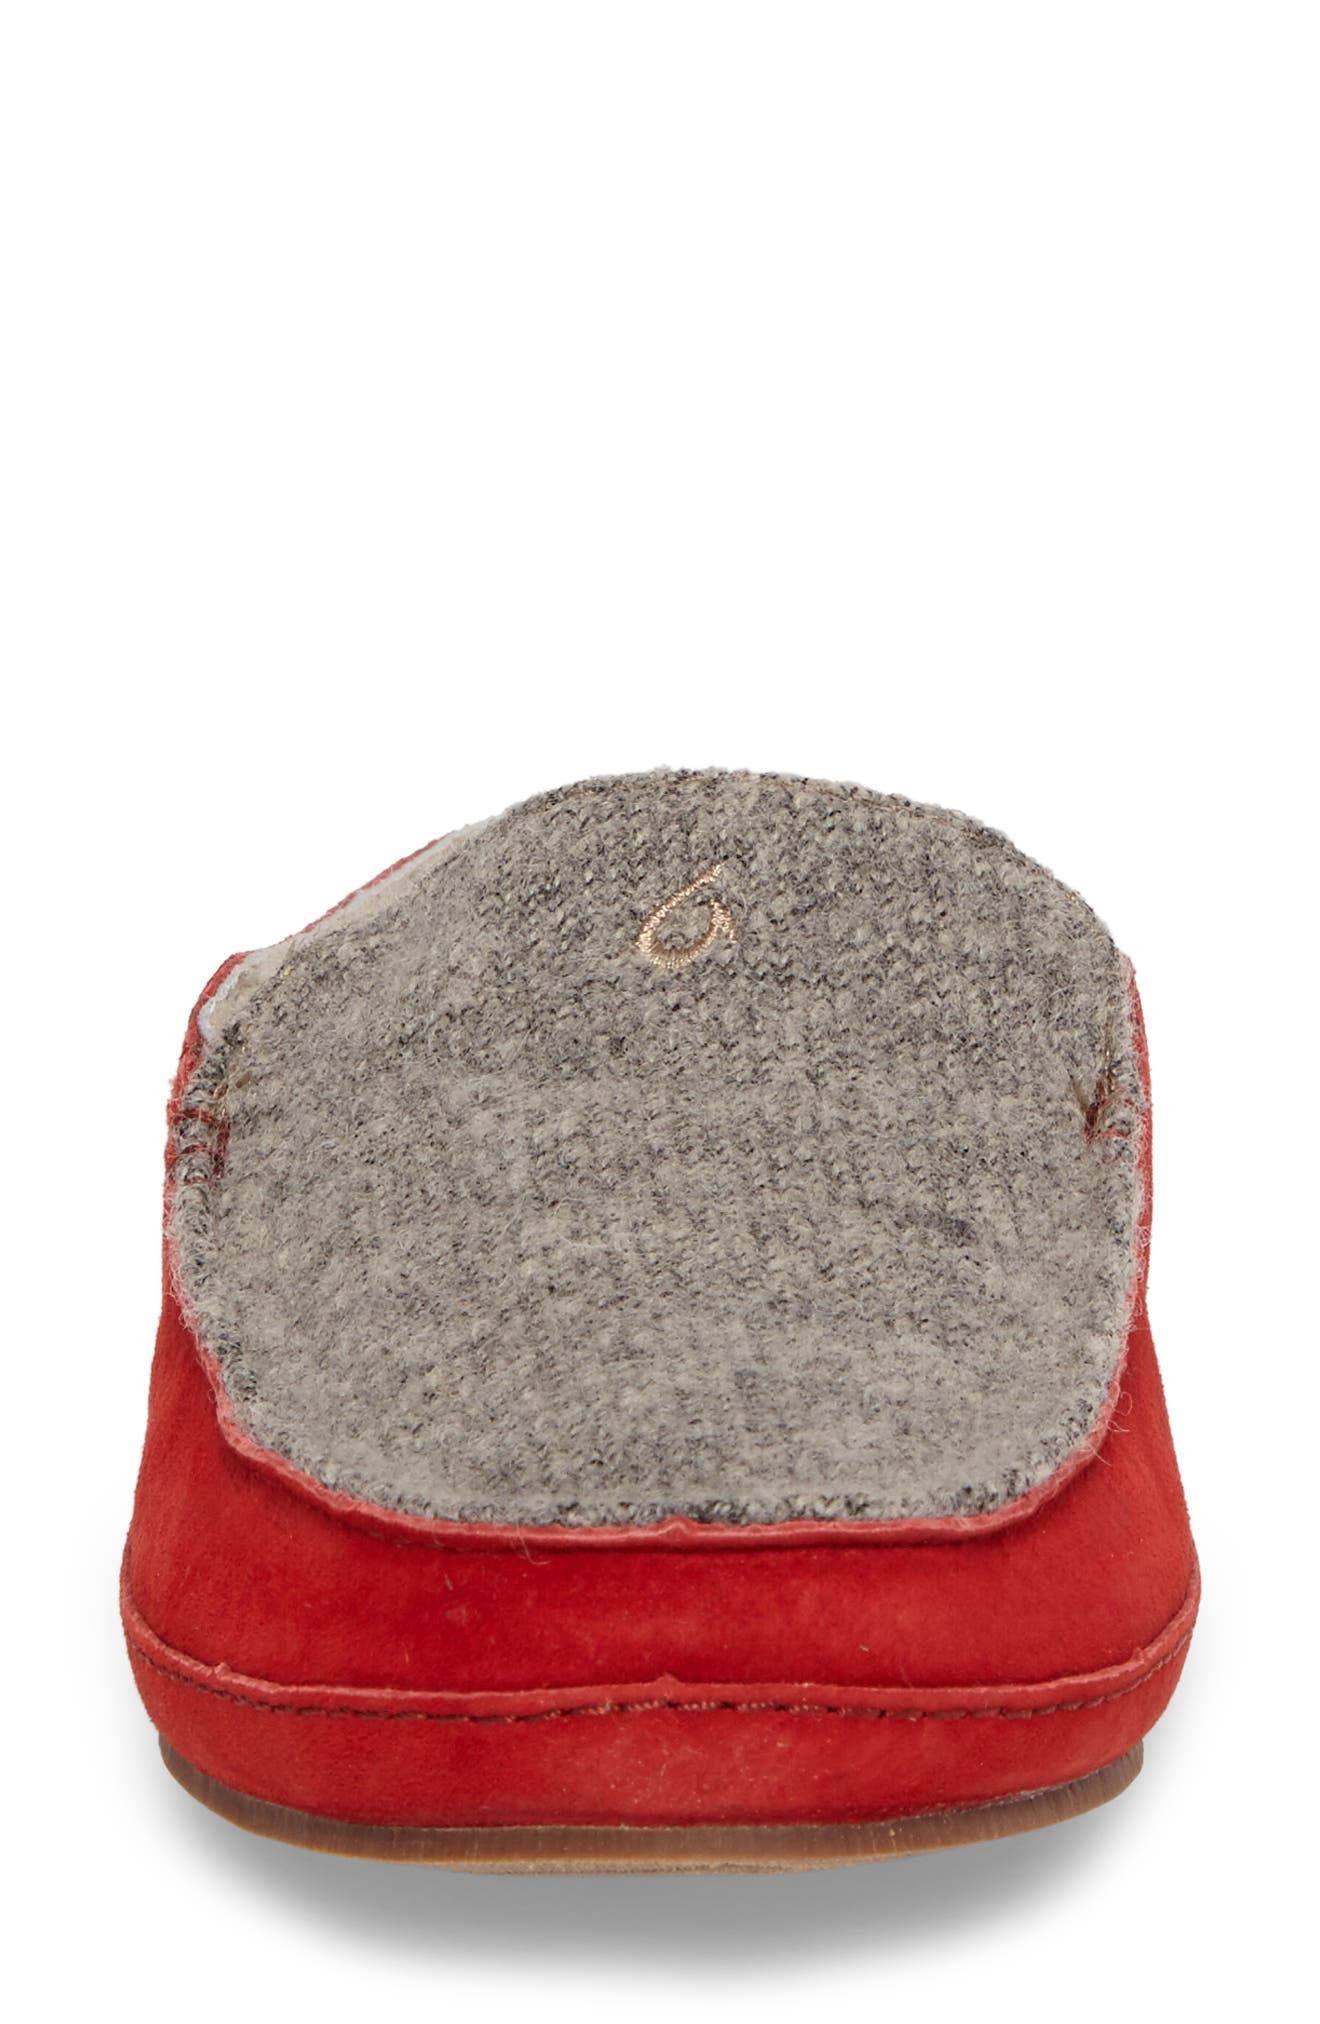 Alaula Genuine Shearling Lined Slipper,                             Alternate thumbnail 4, color,                             Cooler Grey/ Red Mud Leather